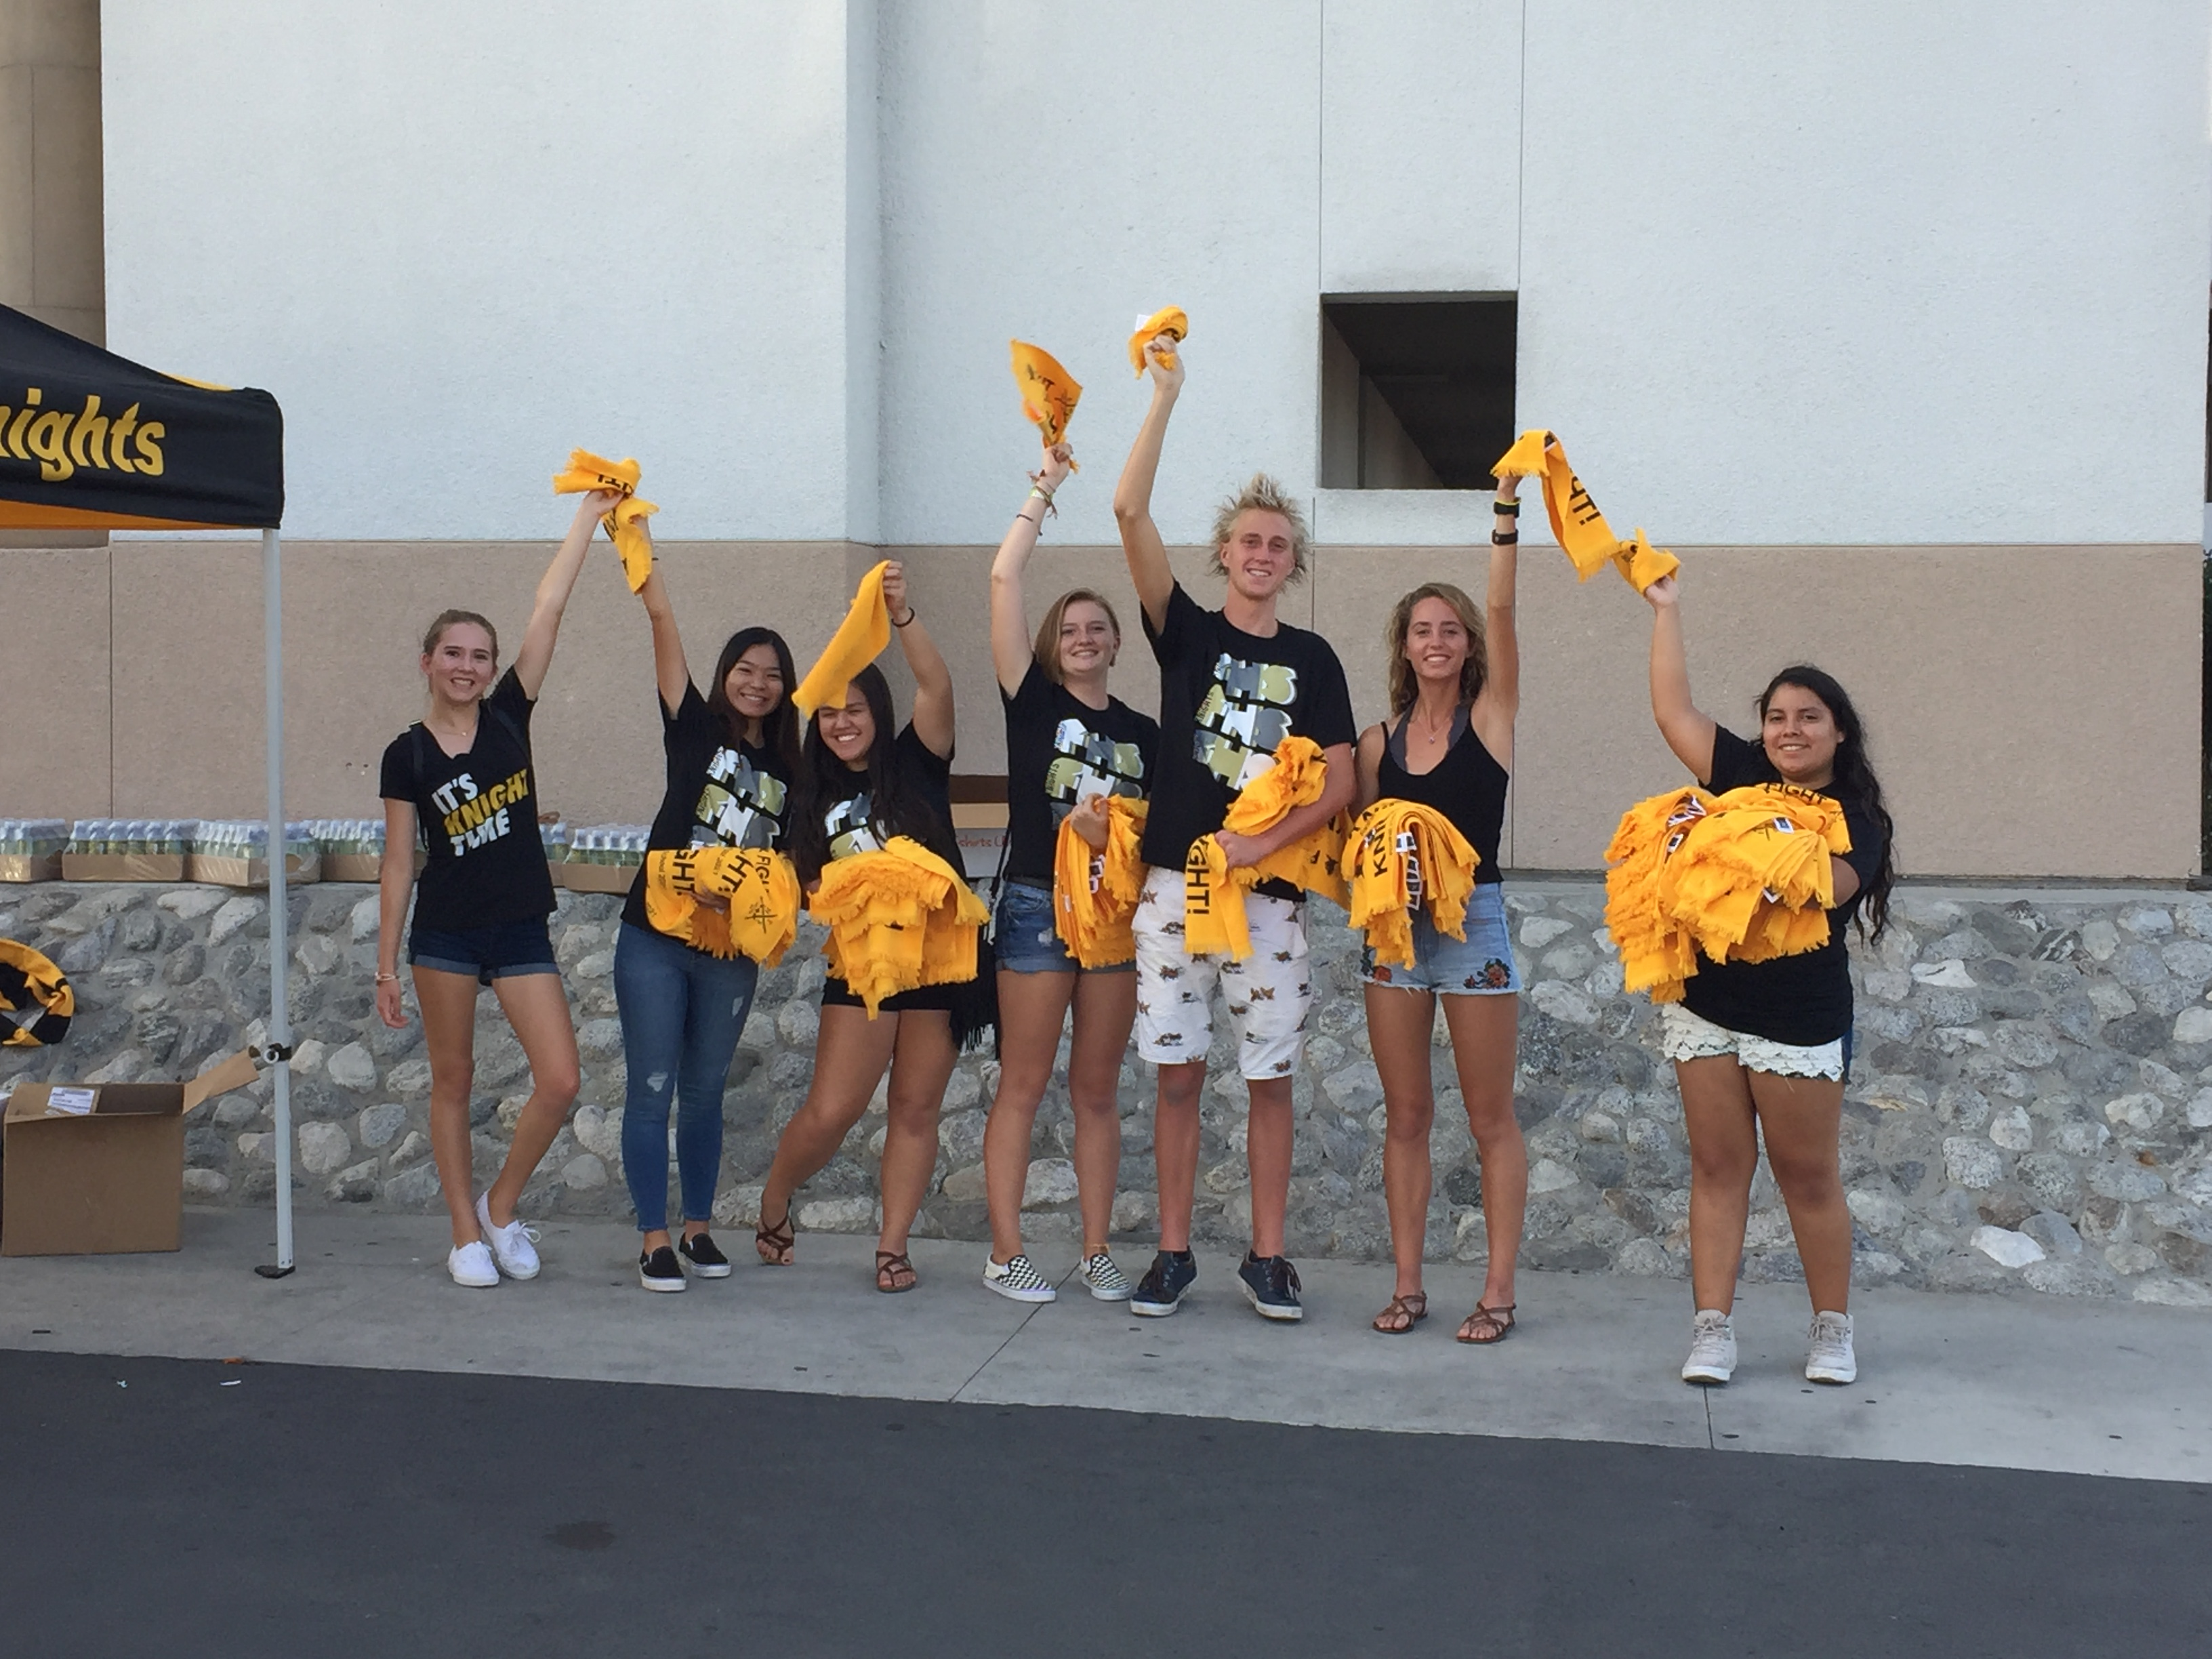 LC Leaders Hand out Rally Towels